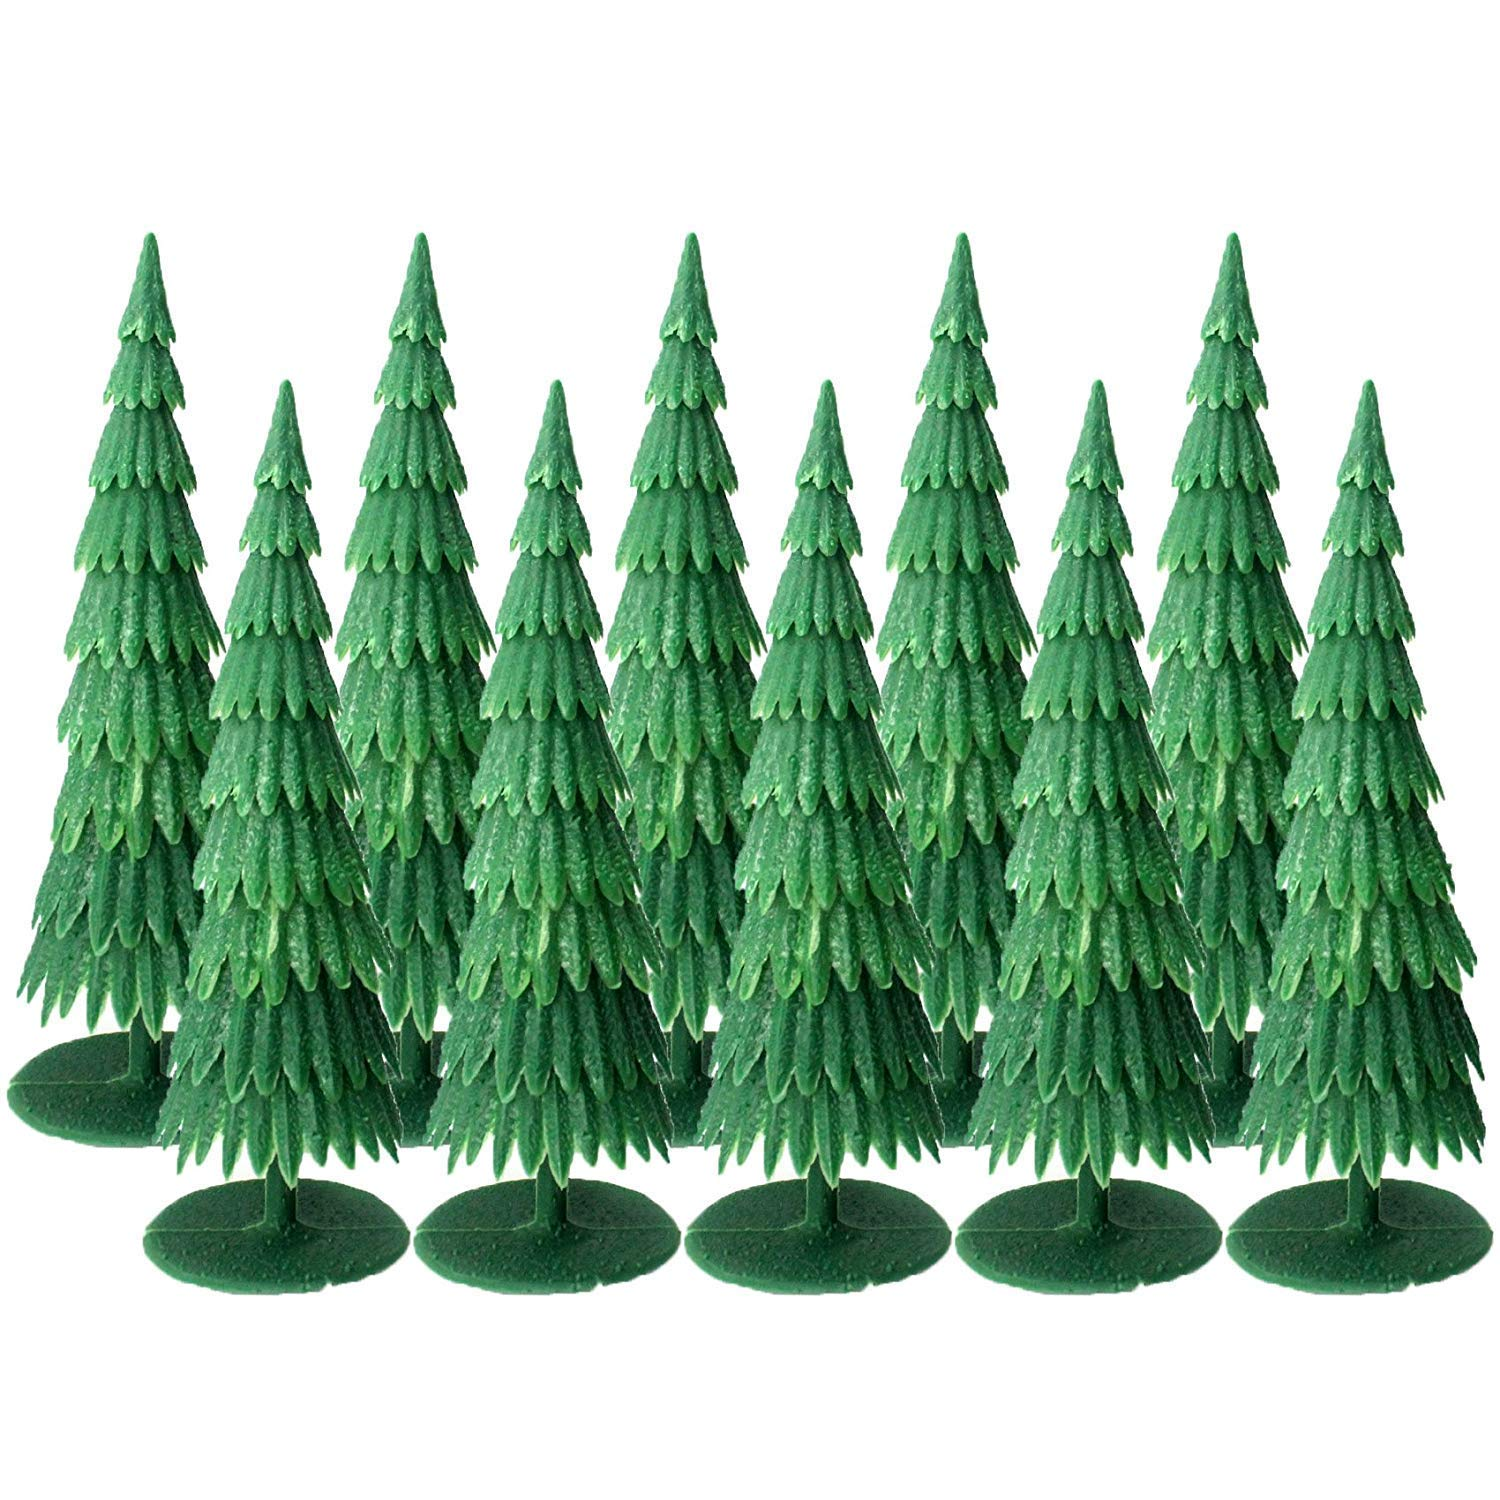 Model Tree-Detachable Holly Trees 5.1inch